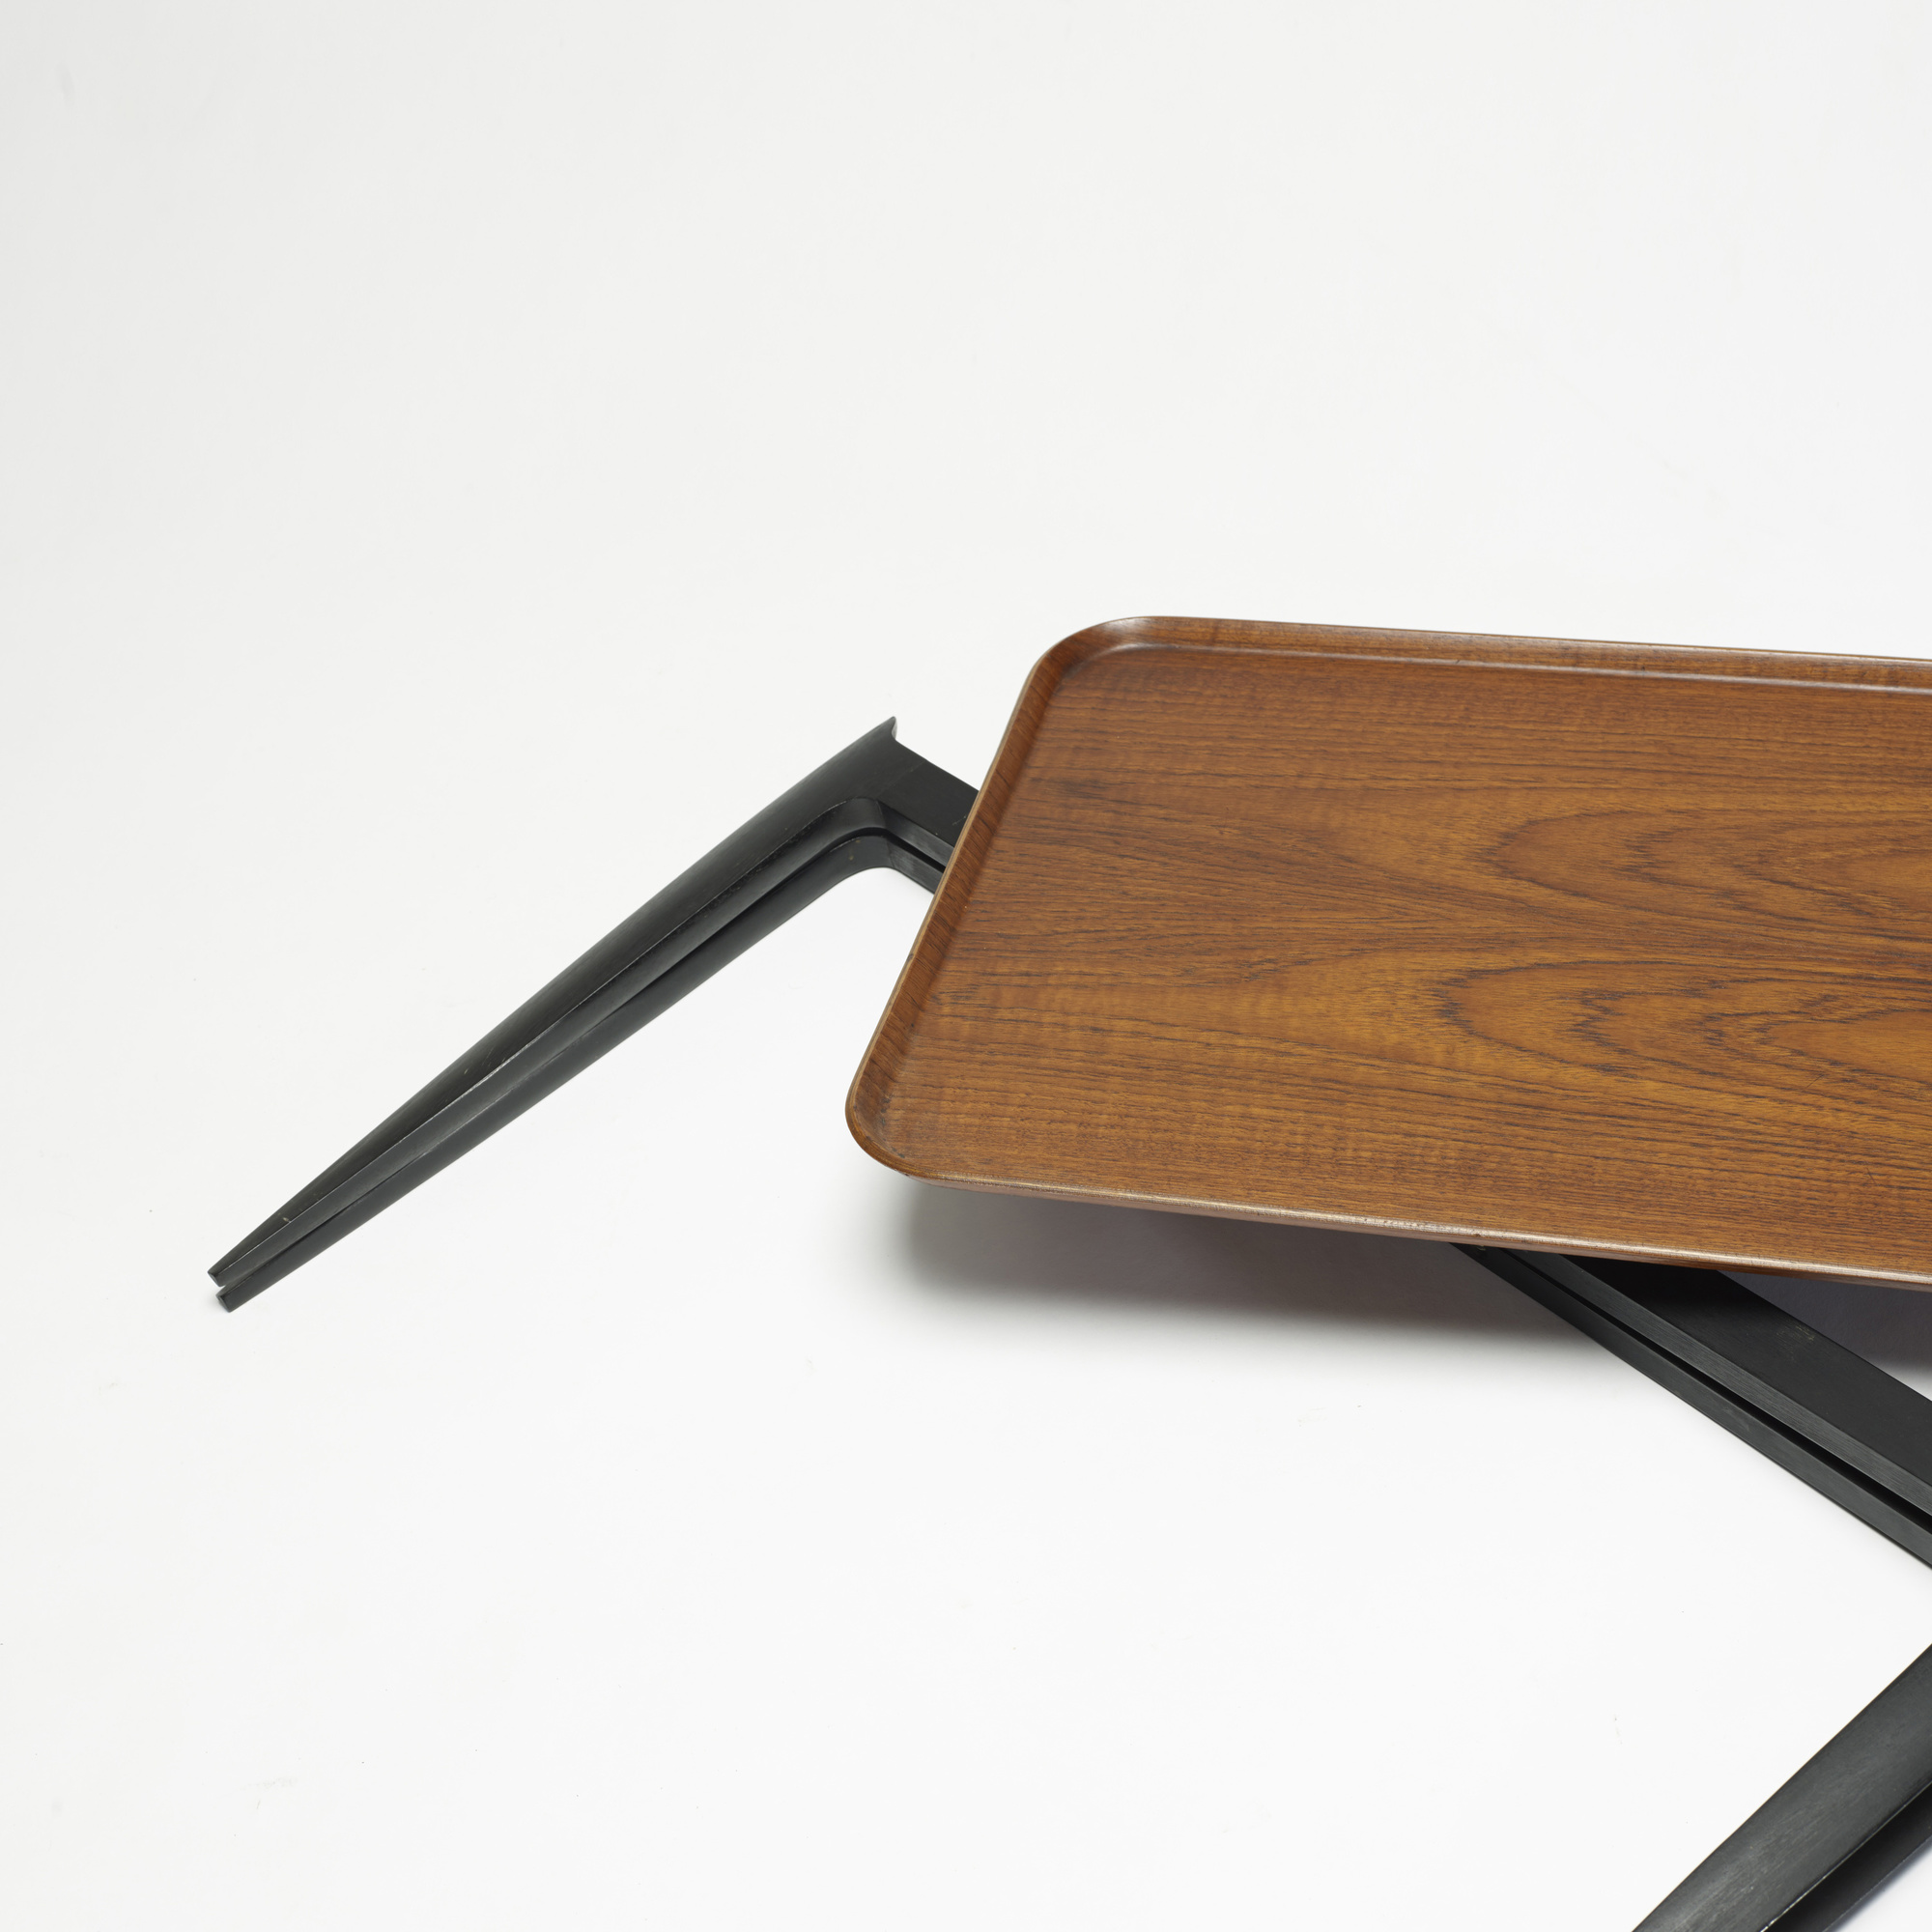 796: Sven Aage Willumsen and H. Engholm / tray table (2 of 3)